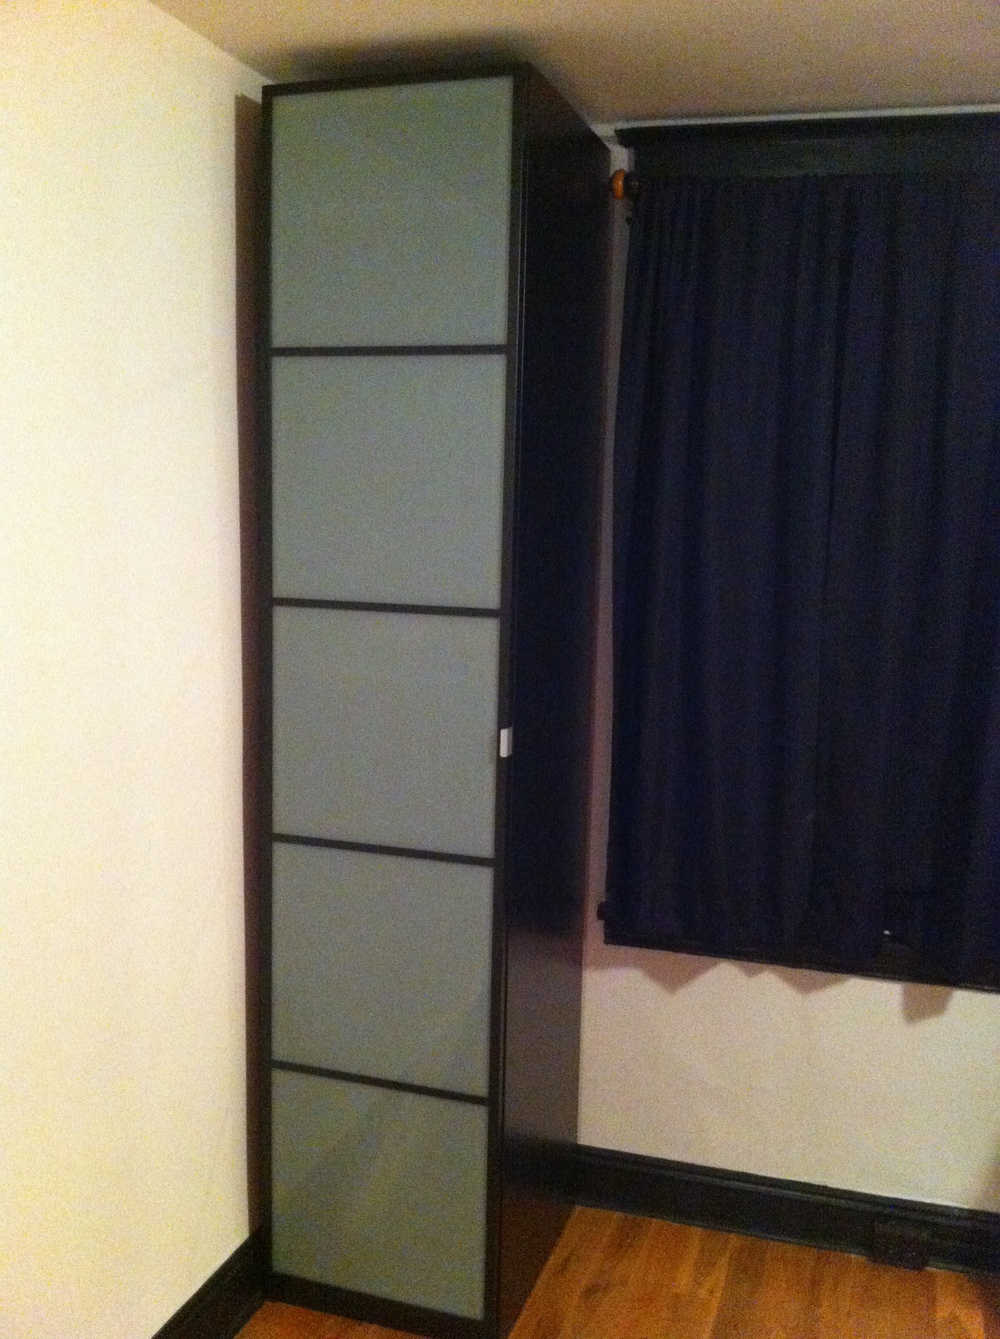 This organization system for storage fits perfectly in the corner and maximizes the use of vertical space.